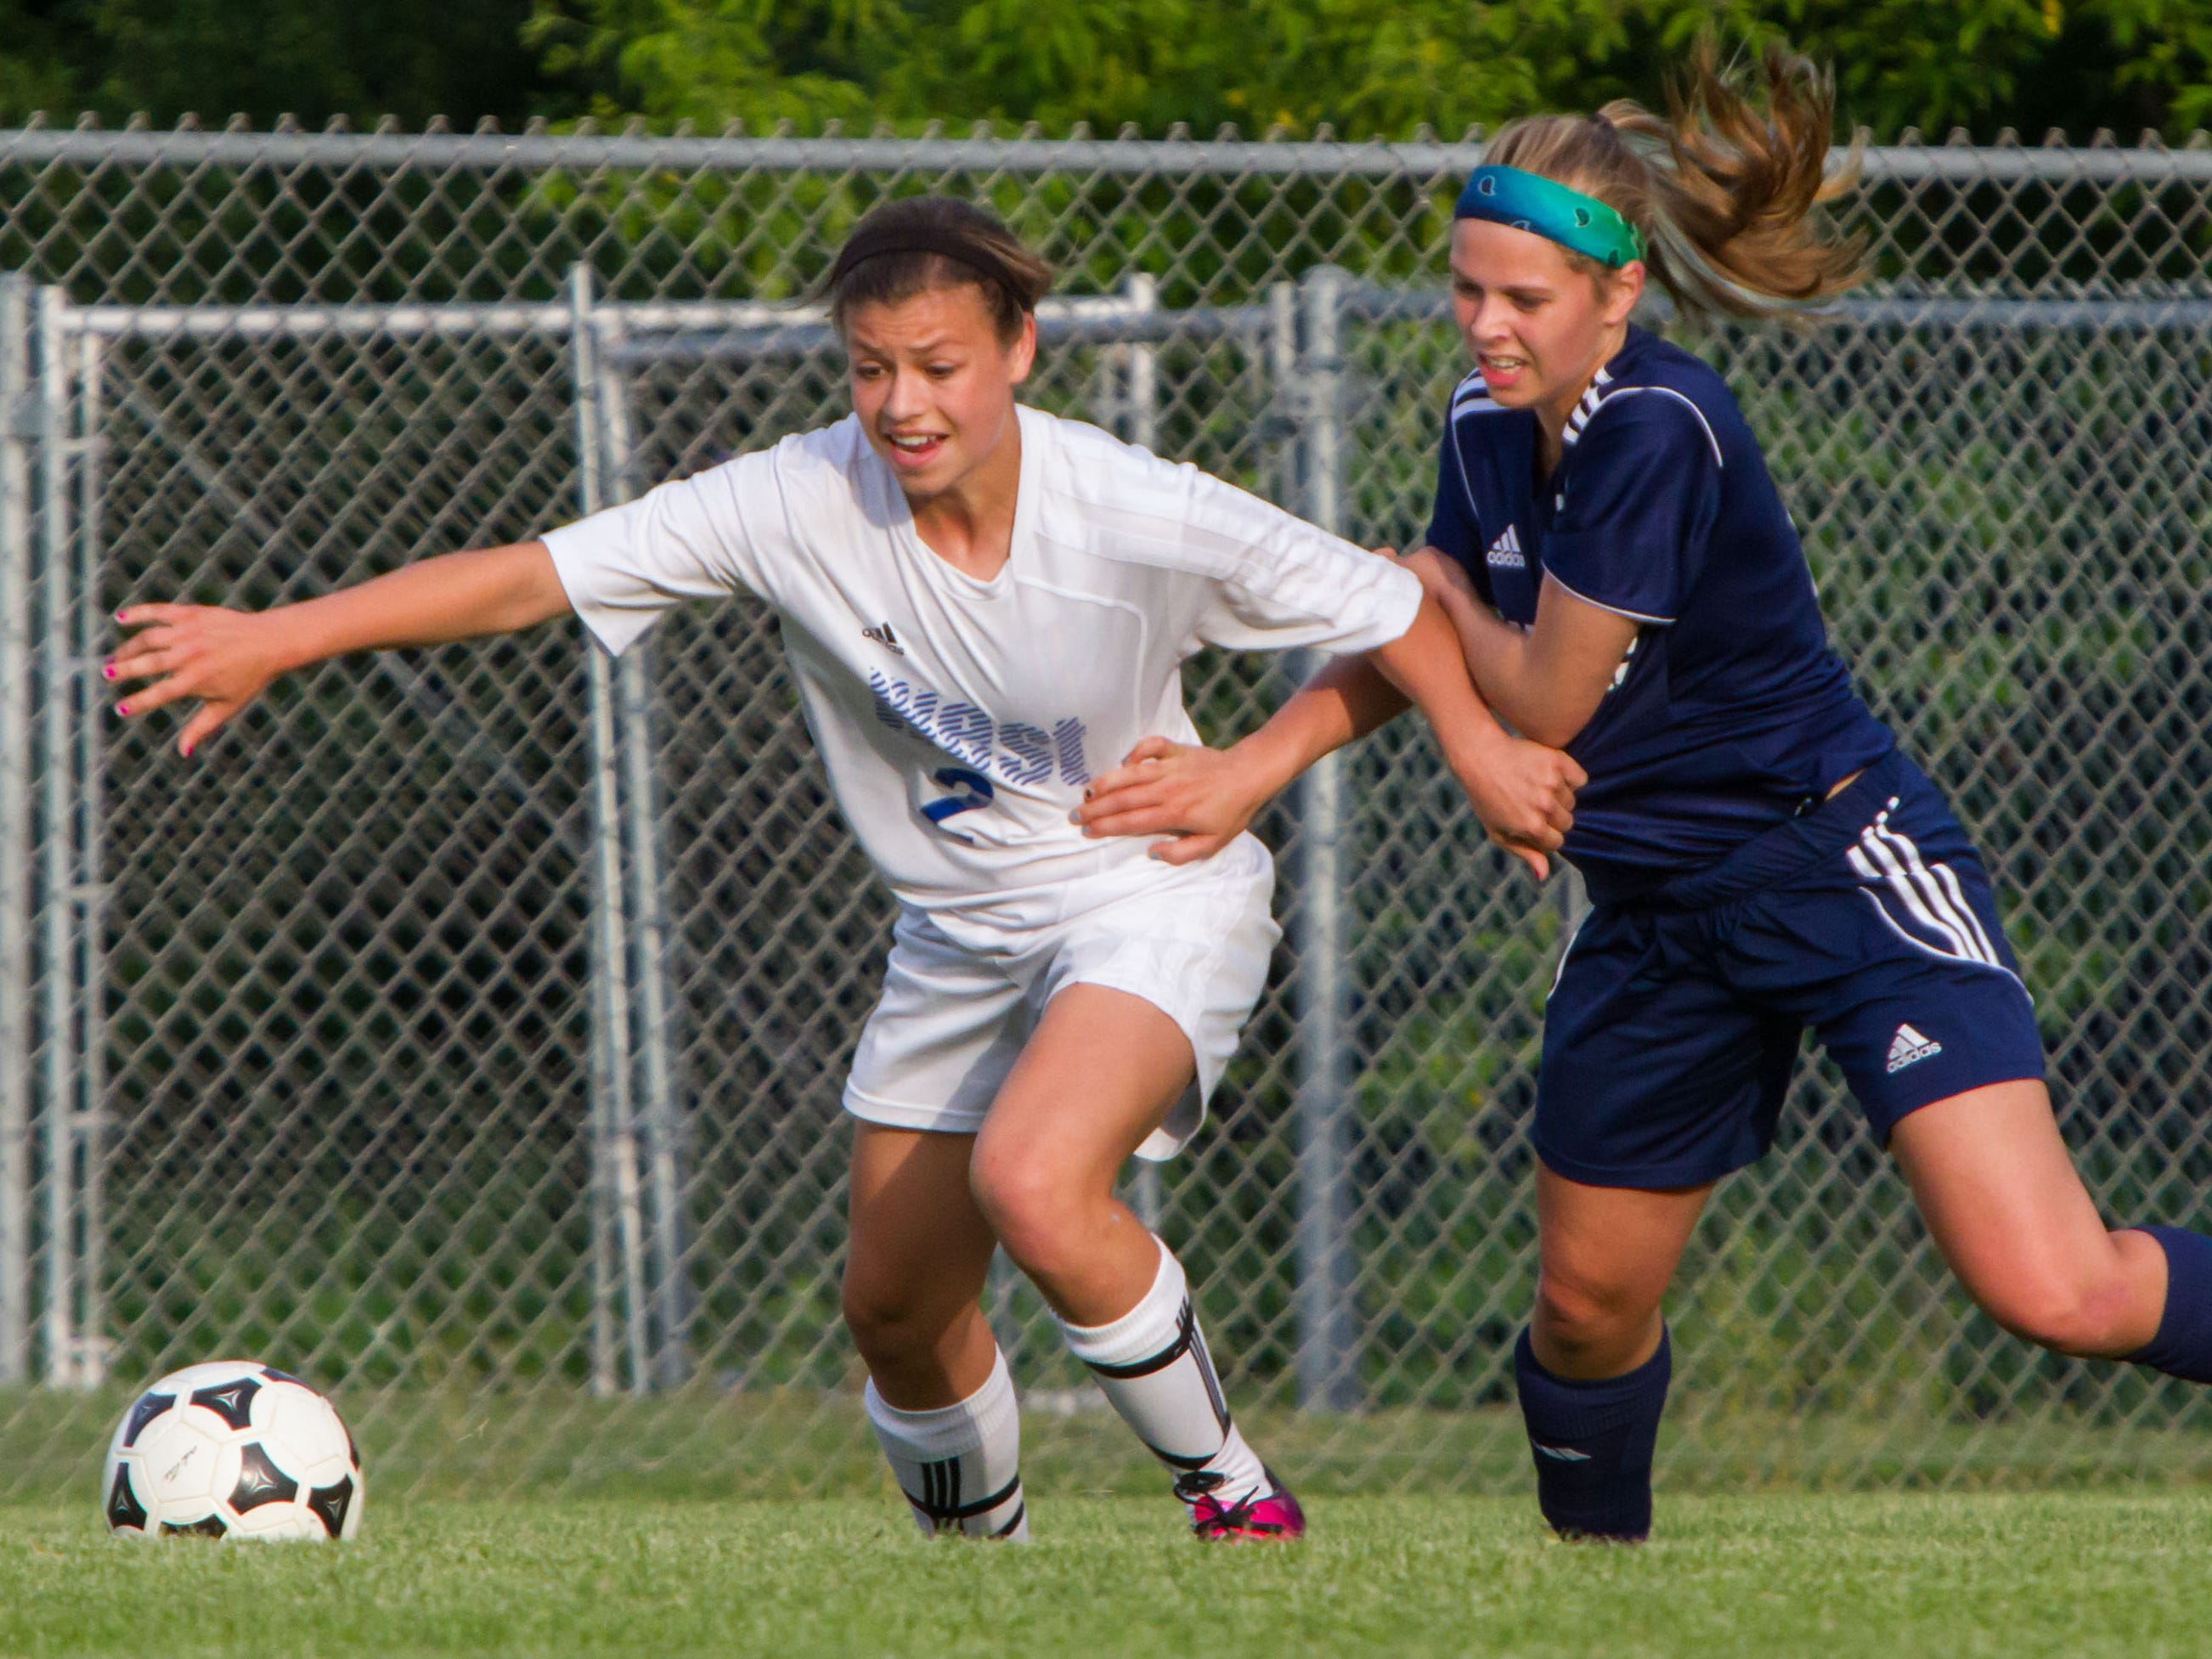 Waukesha West freshman Dani Rhodes (left) and Kettle Moraine junior Hannah McIntosh battle for possession during the sectional final match at Kettle Moraine on Saturday, June 8, 2013.